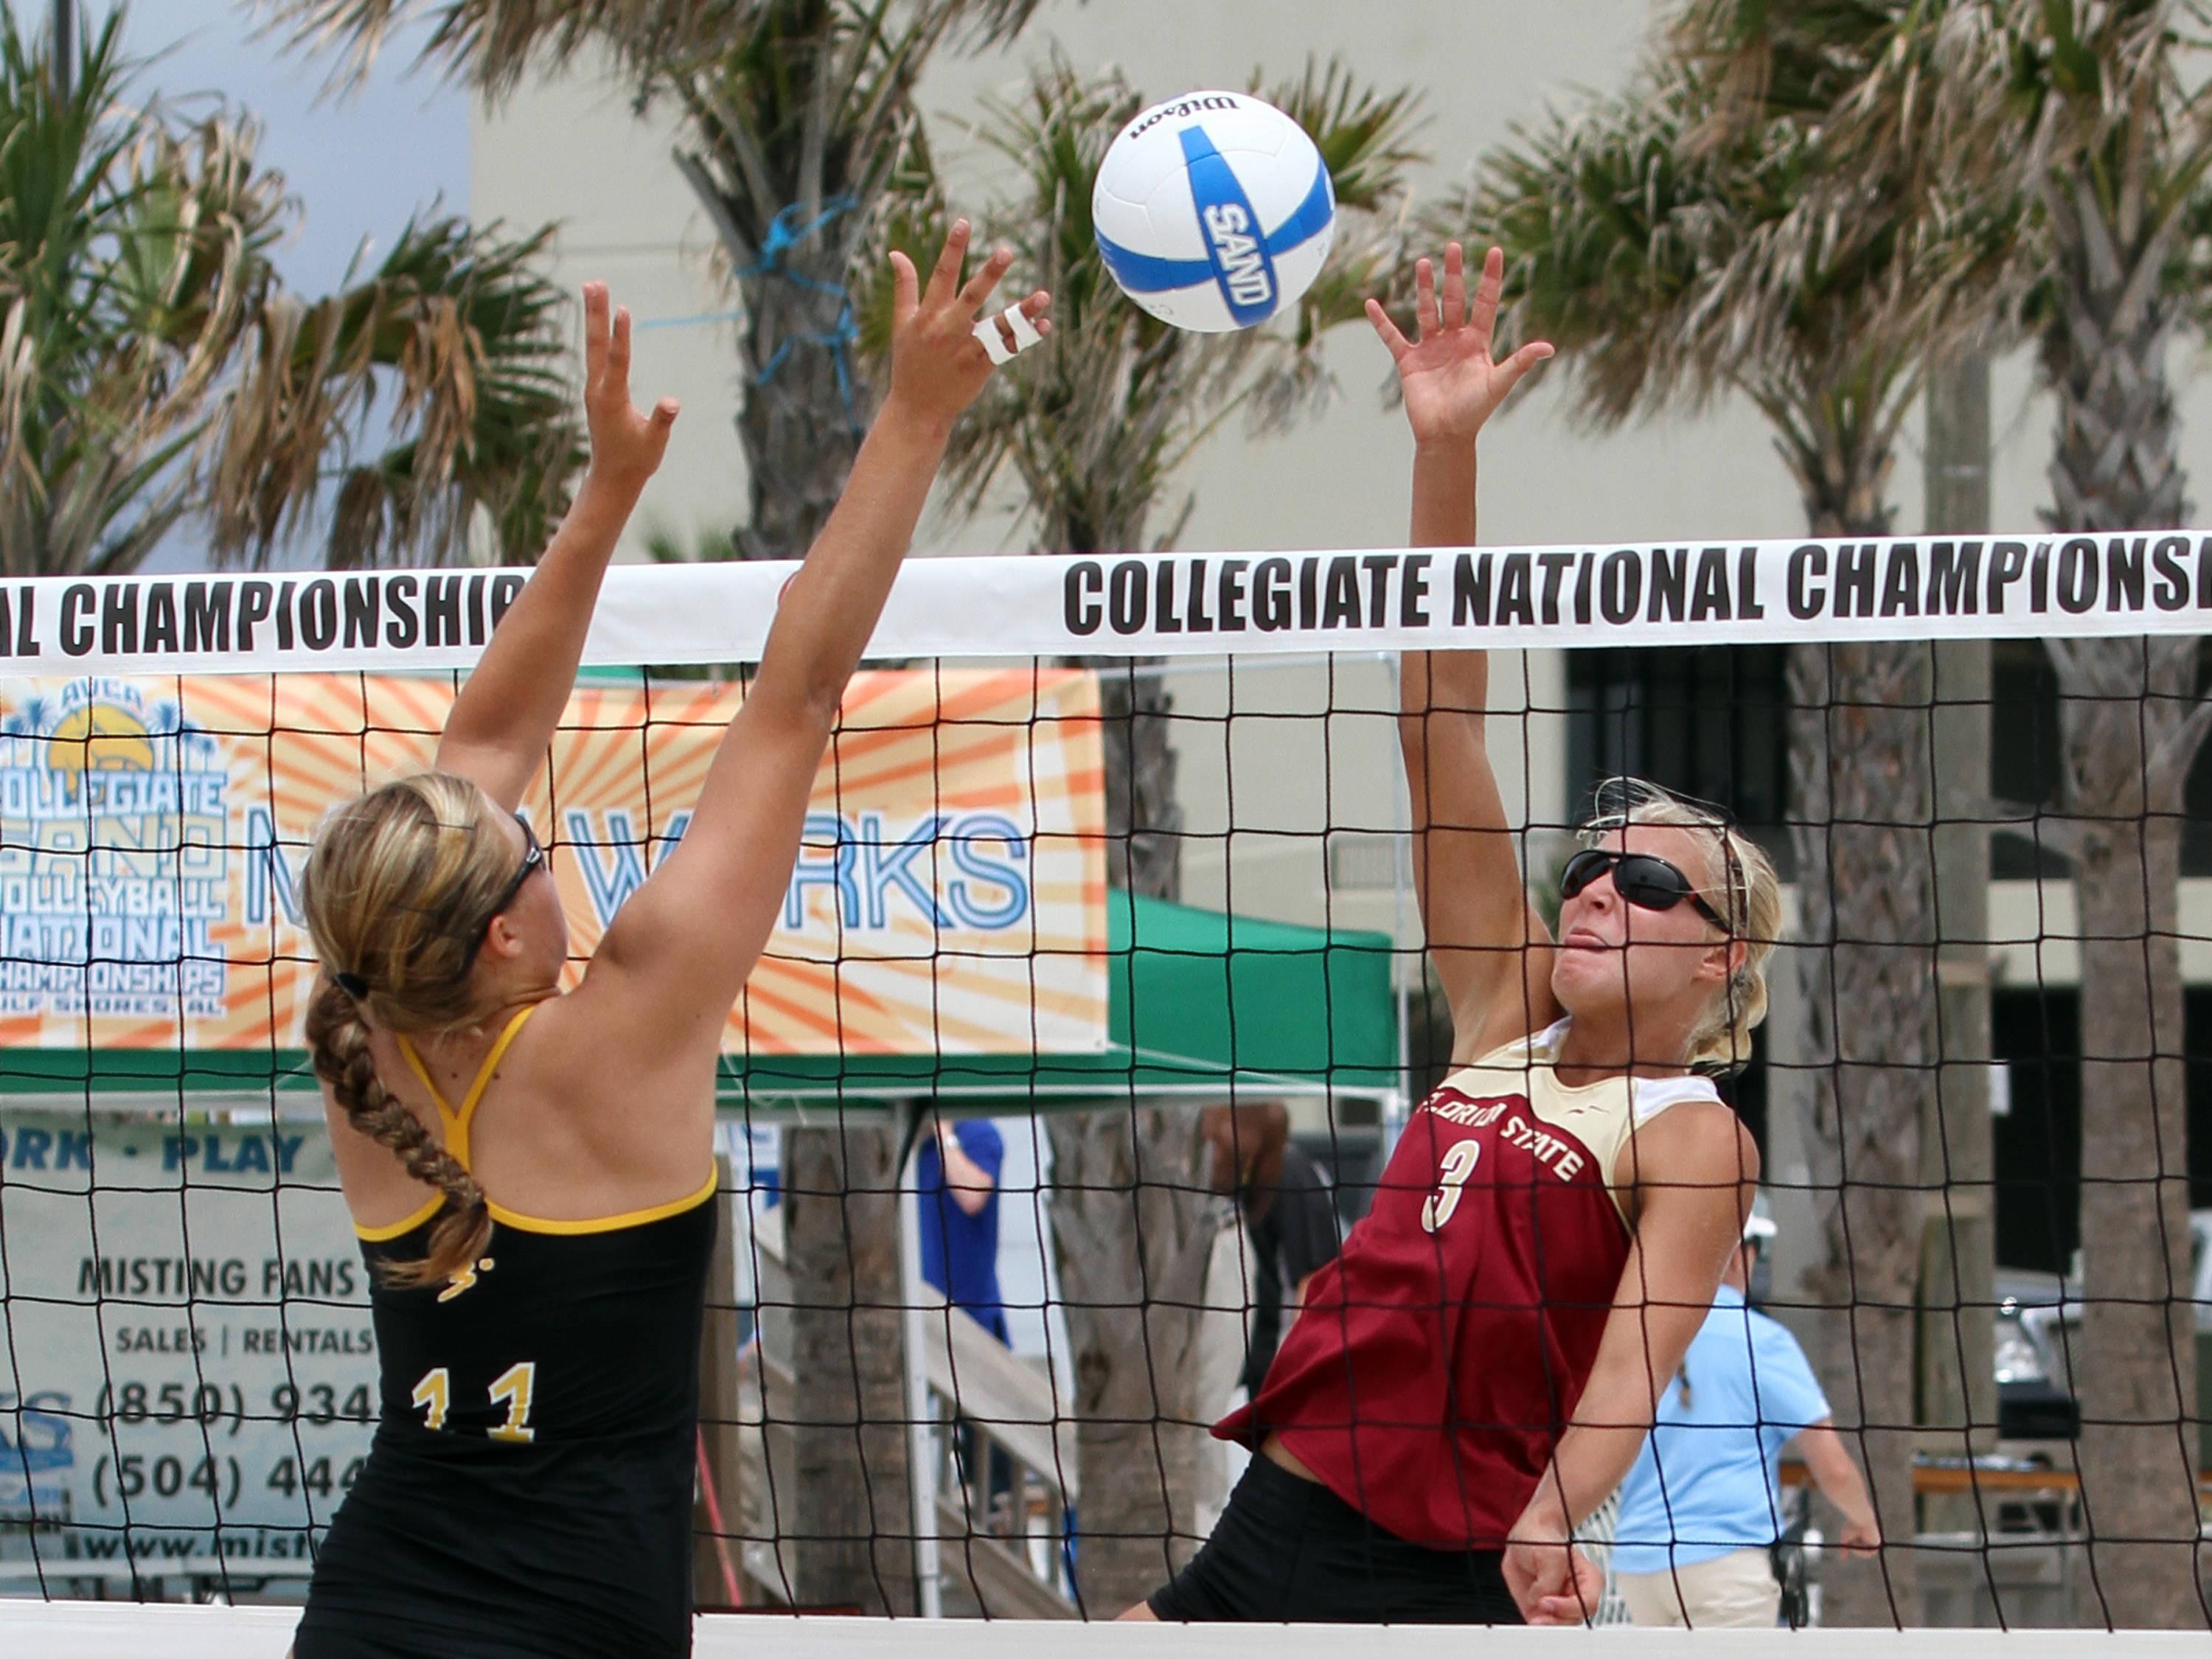 Julie Brown (3), AVCA Collegiate Sand Volleyball National Championships,  Gulf Shores, Alabama,05/03/13 . (Photo by Steve Musco)